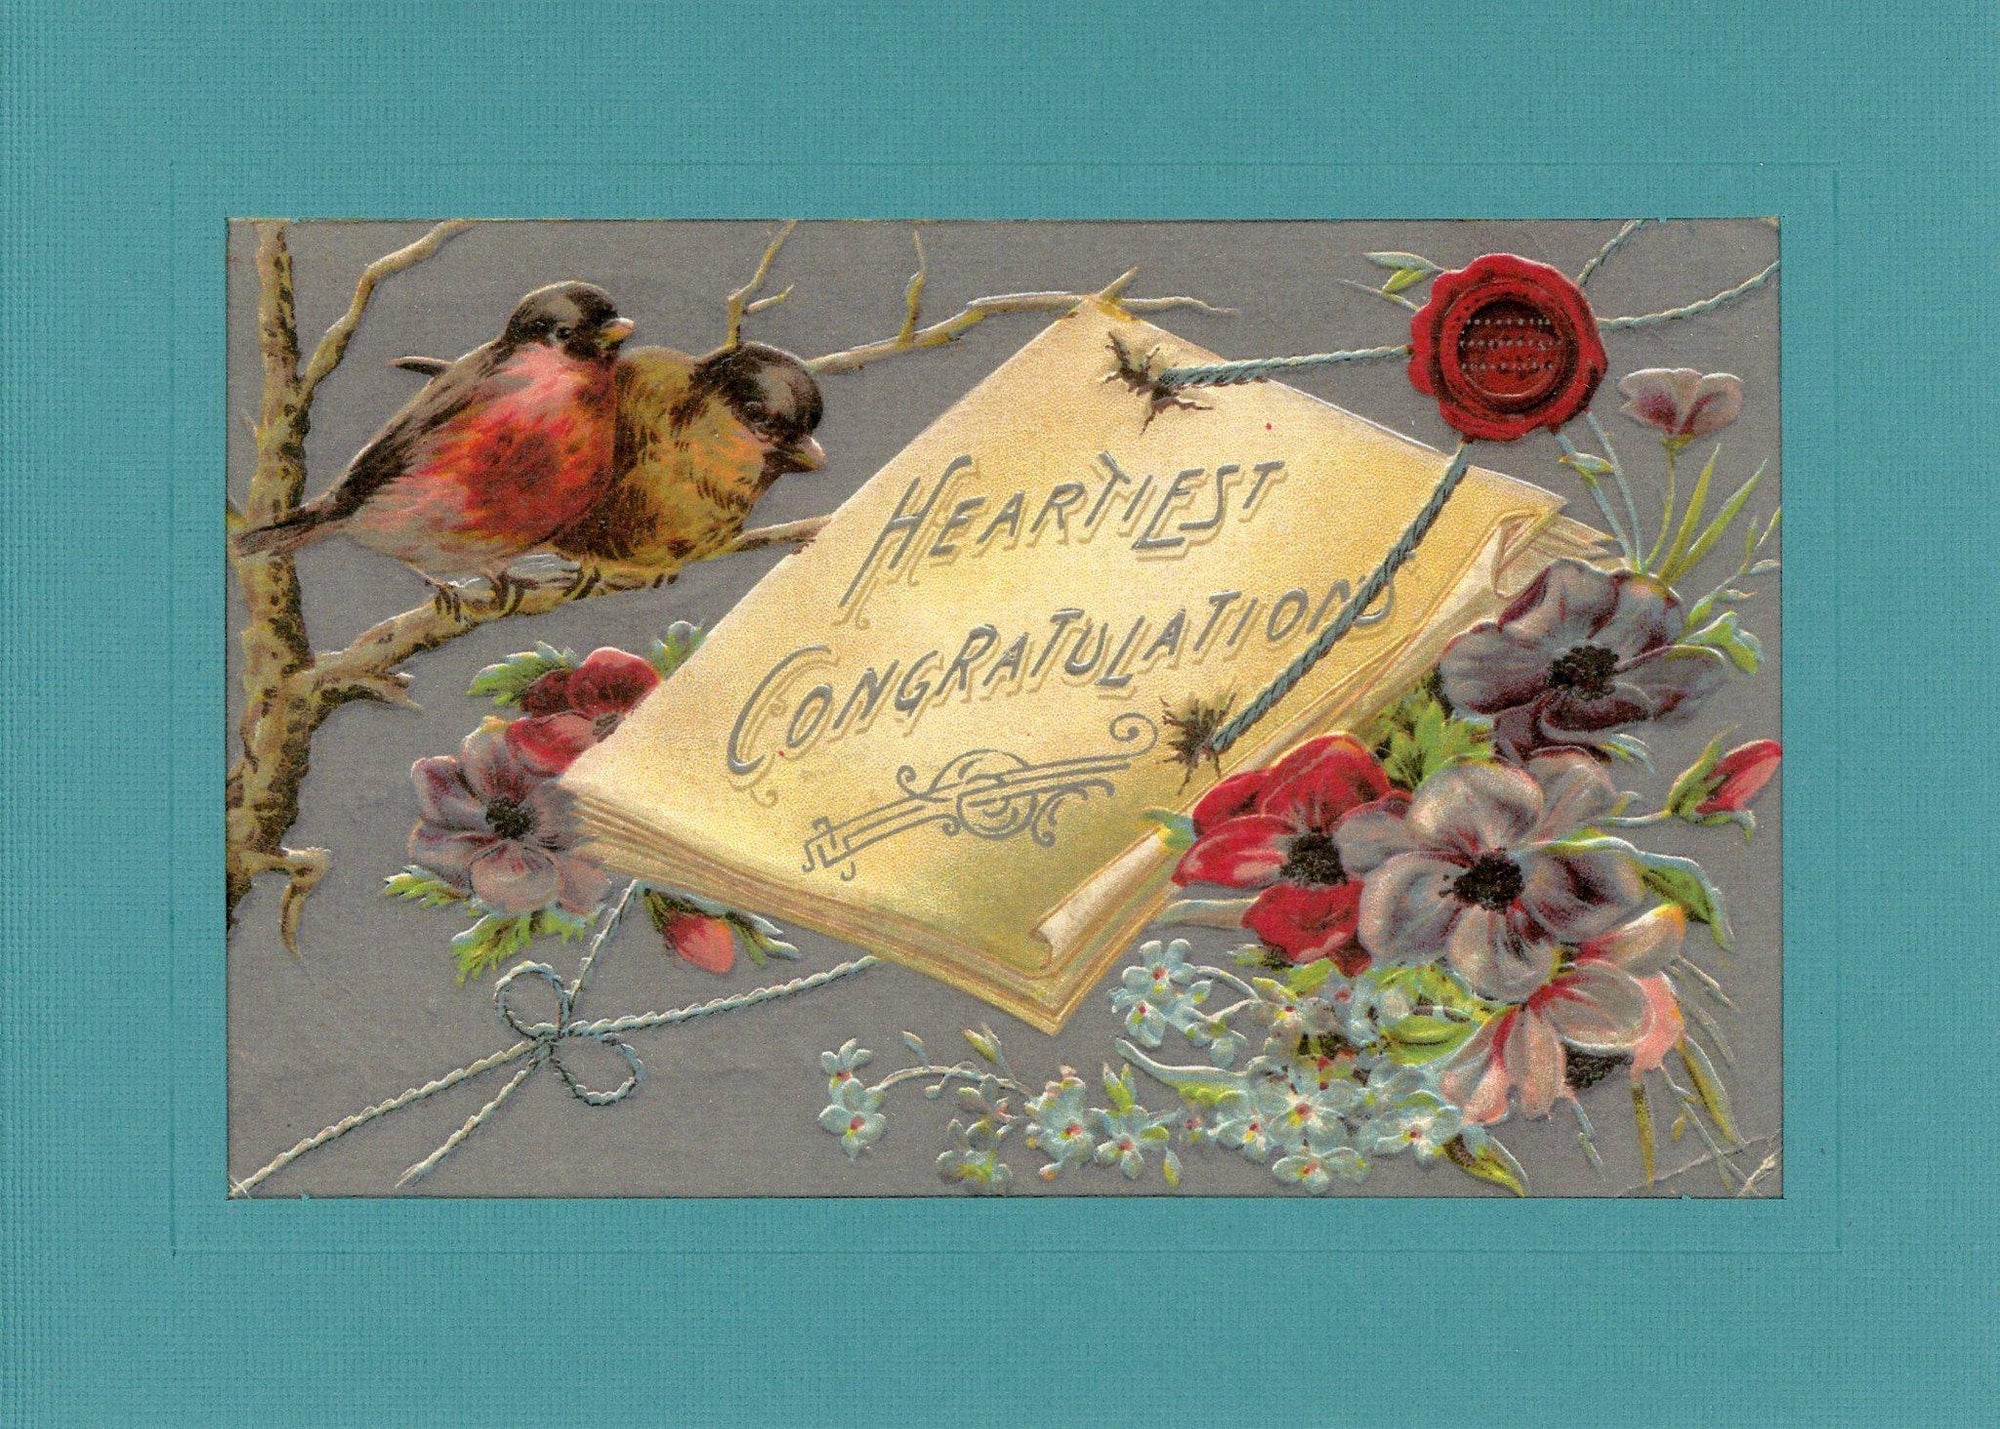 Heartiest Congratulations-Greetings from the Past-Plymouth Cards